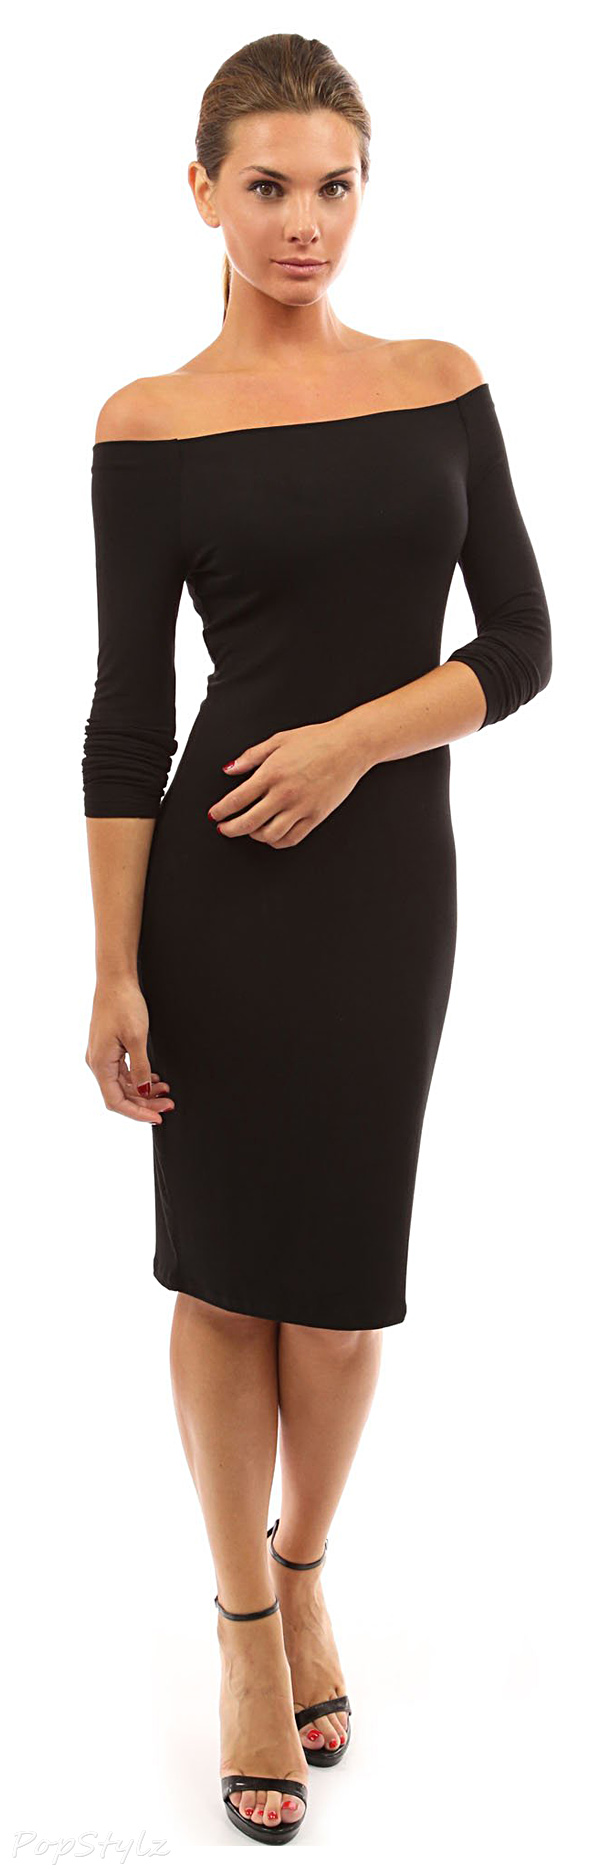 PattyBoutik Women's Off Shoulder Long Sleeve Fitted Dress